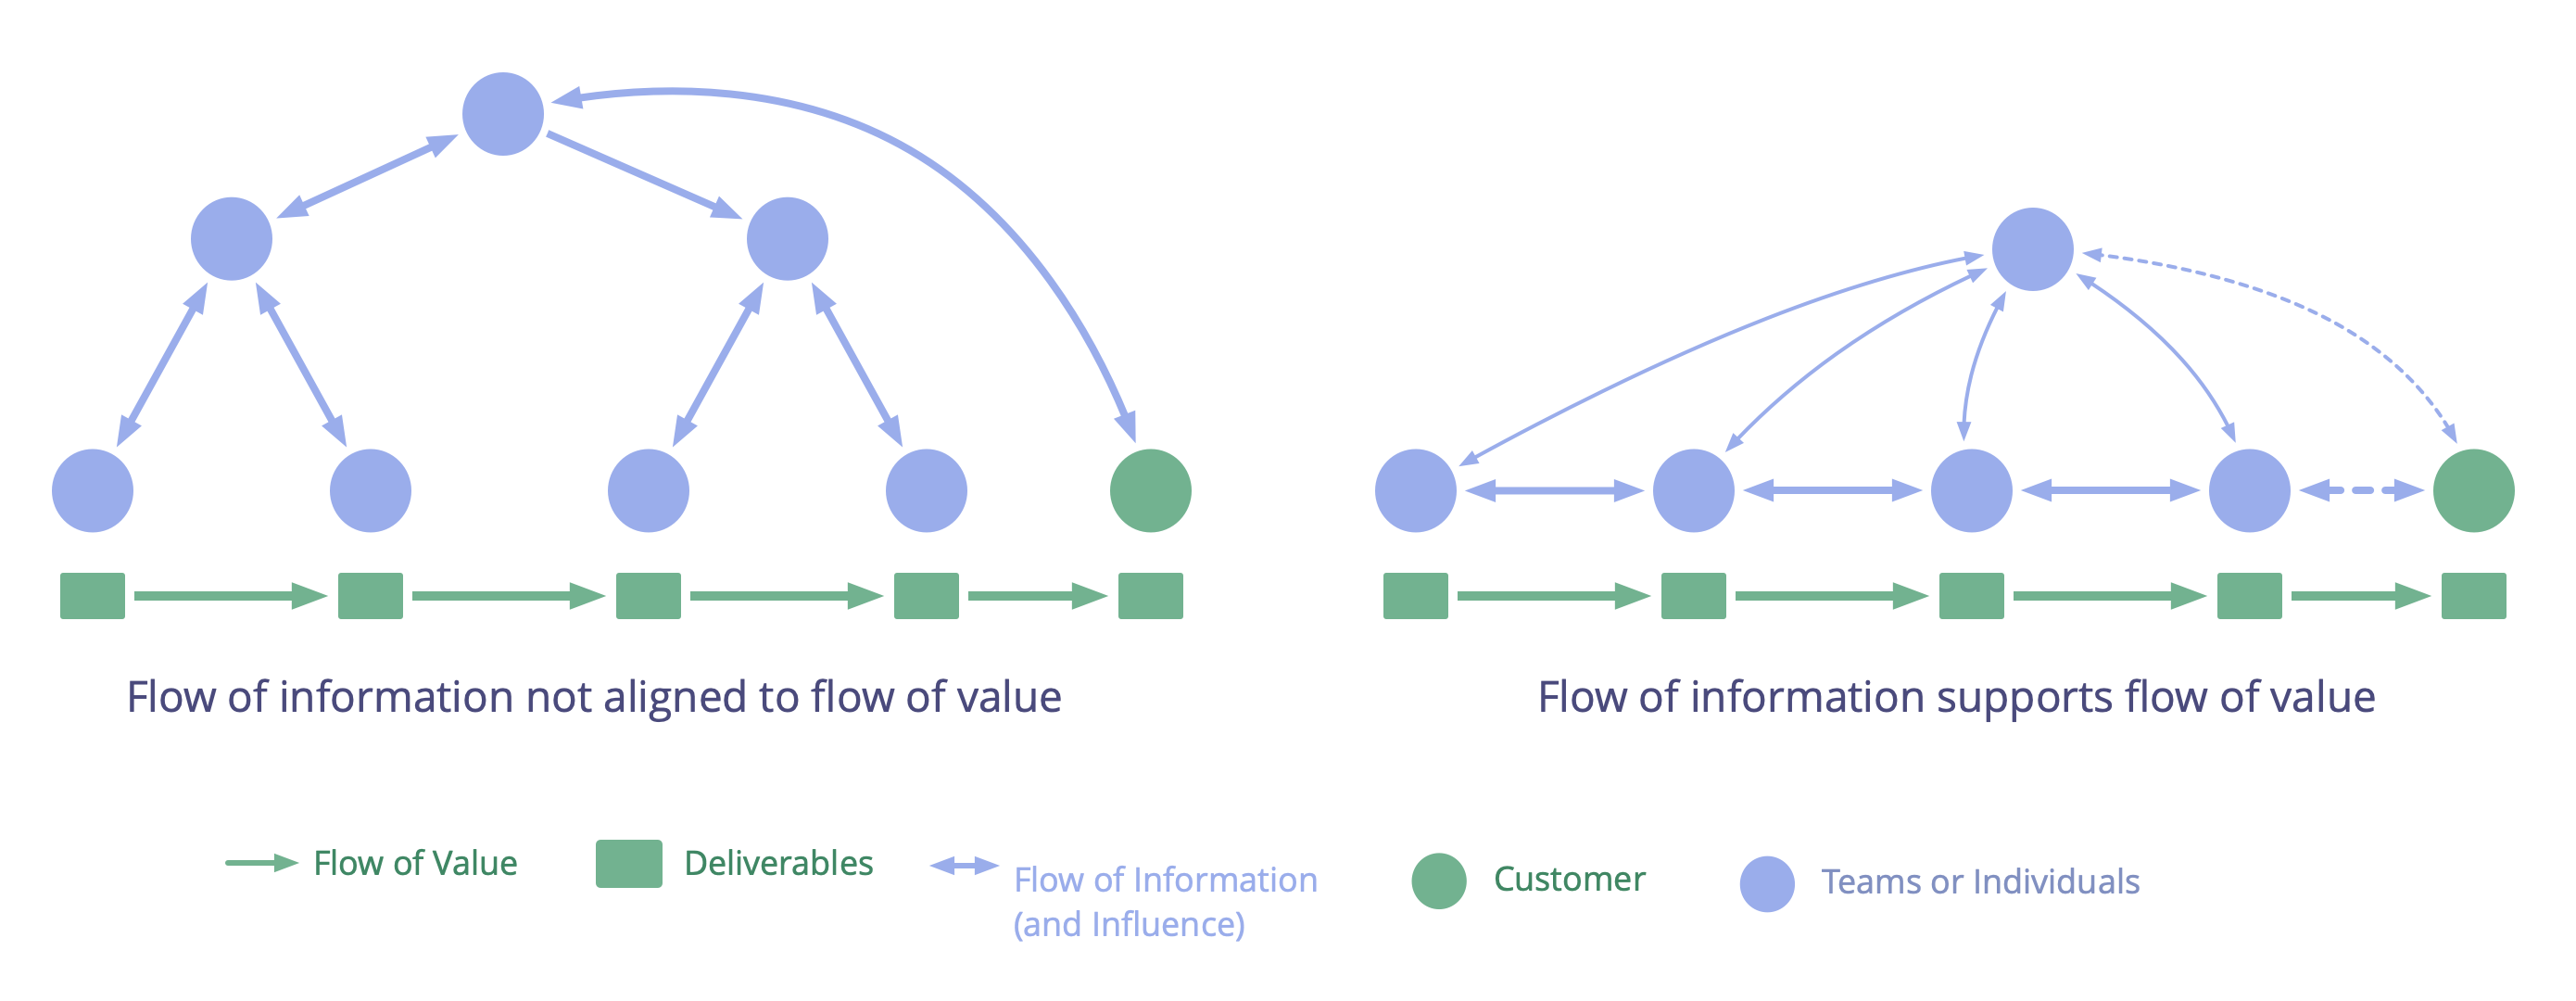 Aligning the flow of information to support the flow of value